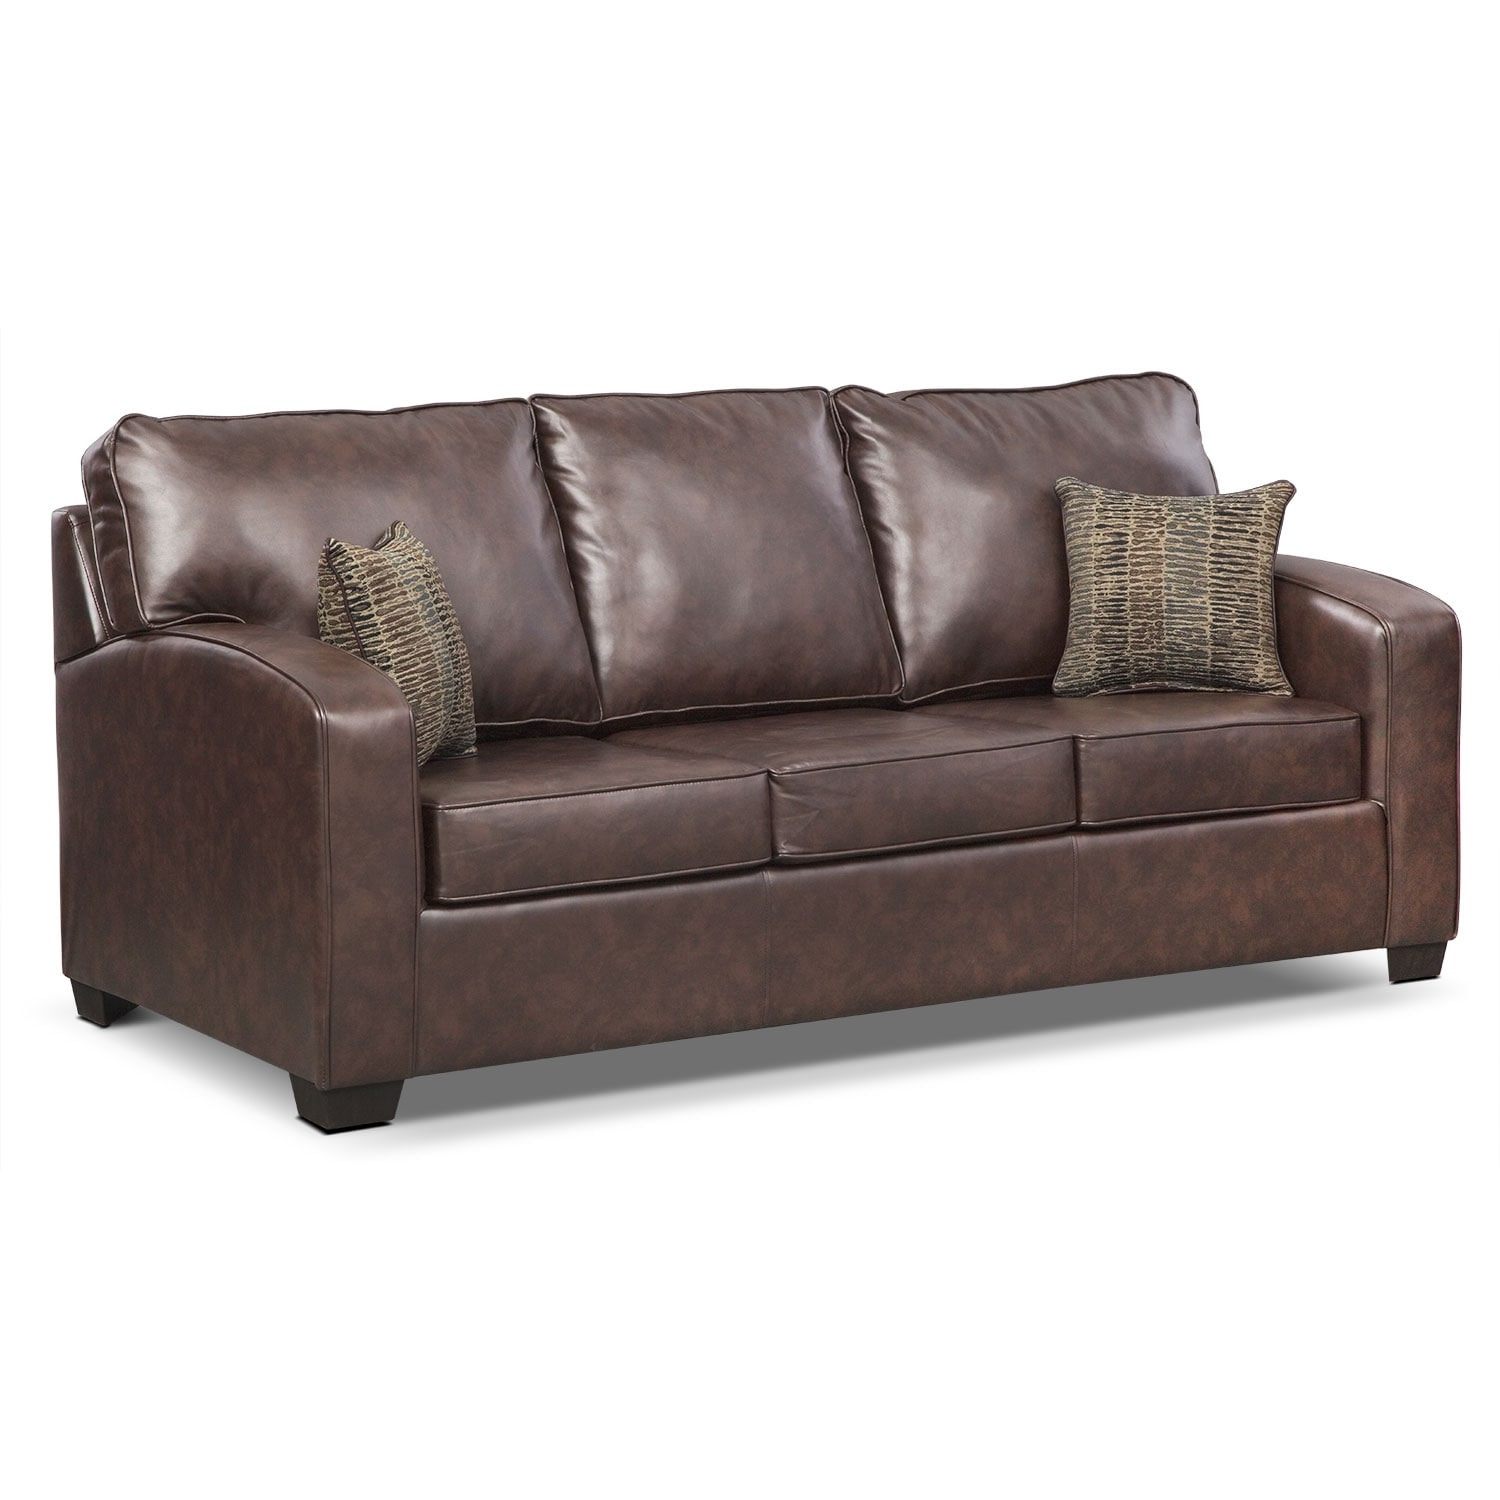 Brookline leather queen memory foam sleeper sofa for Leather sleeper sofa